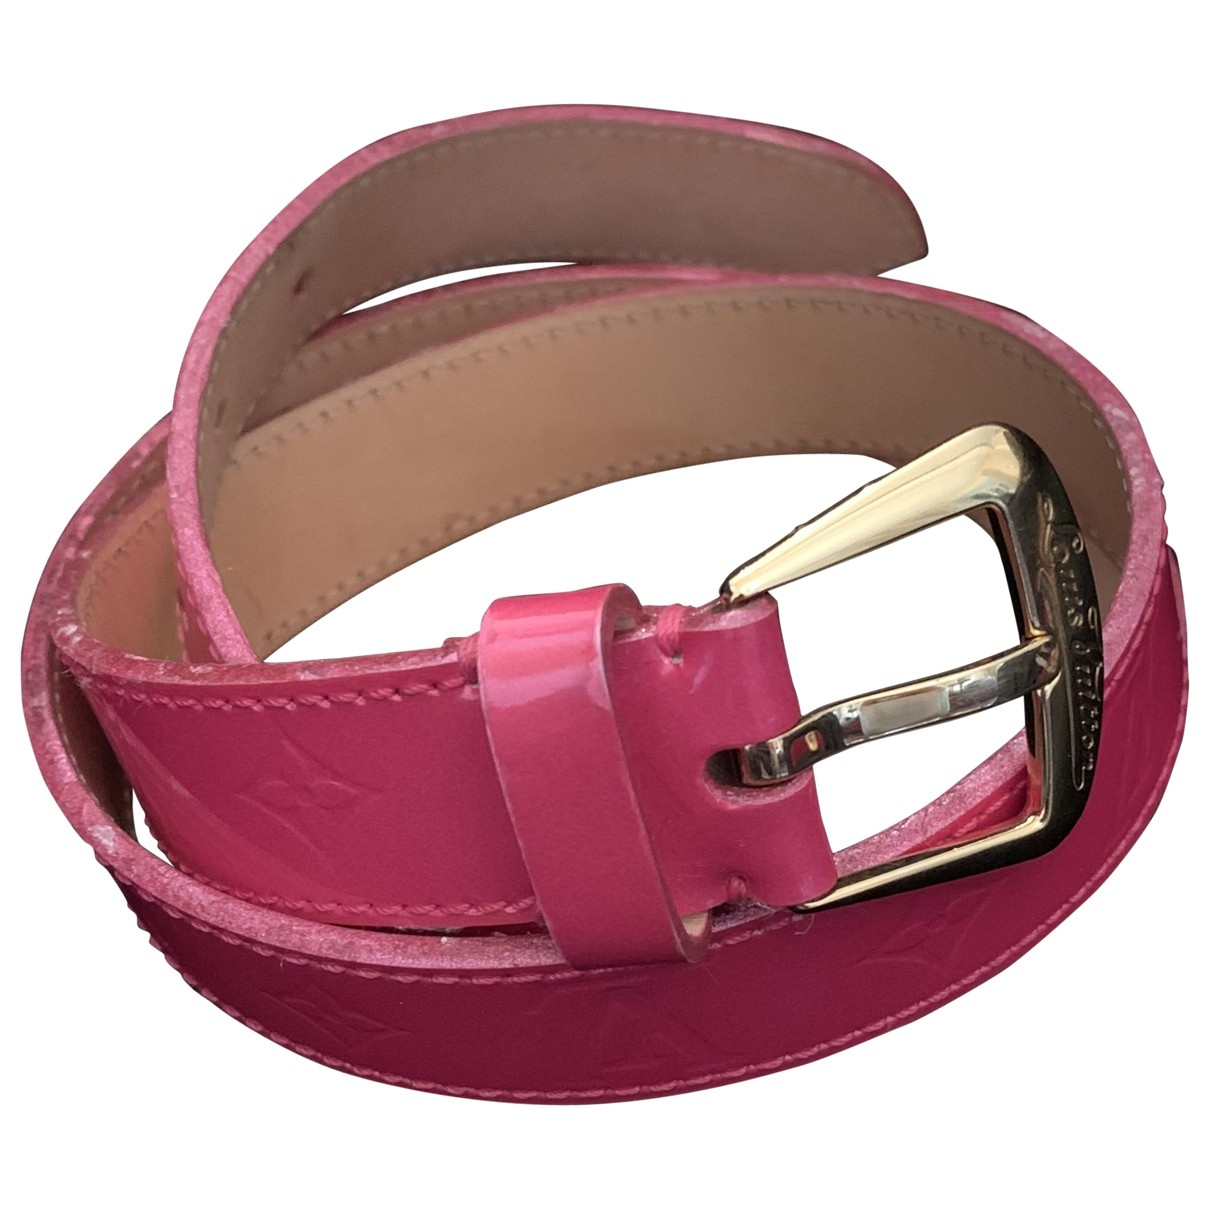 Louis Vuitton \N Pink Patent leather belt for Women 80 cm